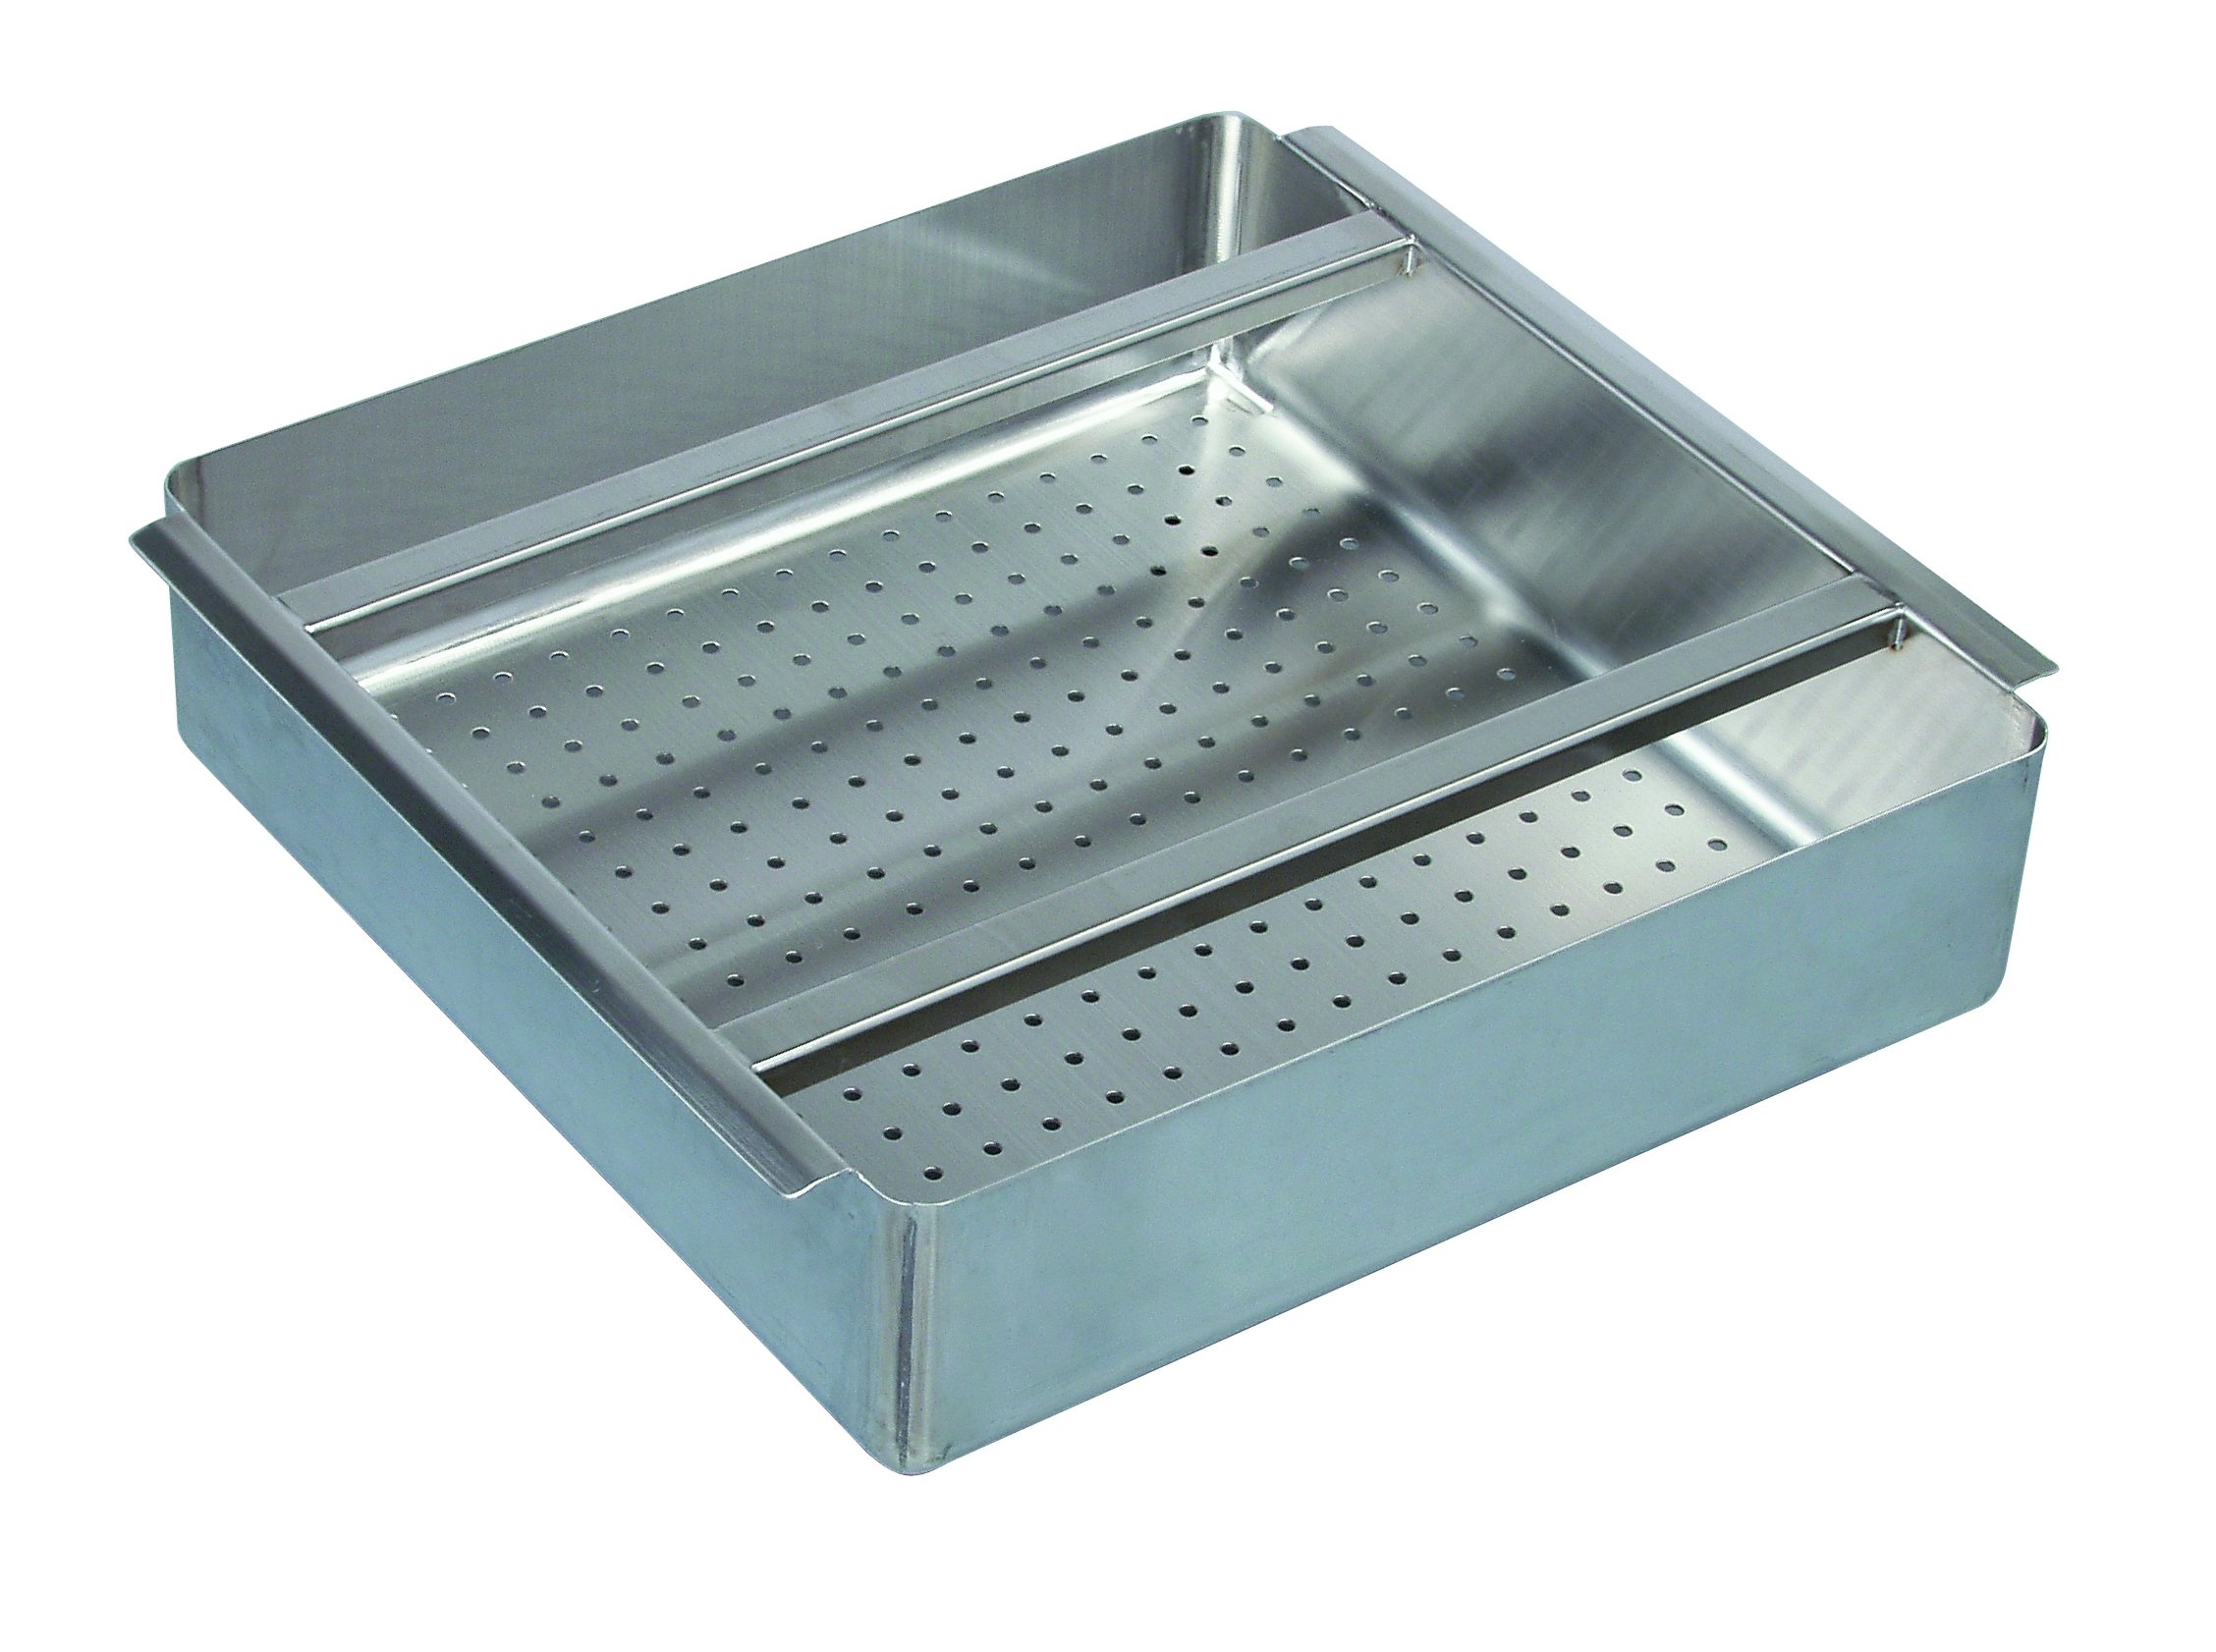 Tarrison PRB2020 Stainless Steel Perforated Pre-Rinse Basket, 20'' Length x 5'' Height x 20'' Depth